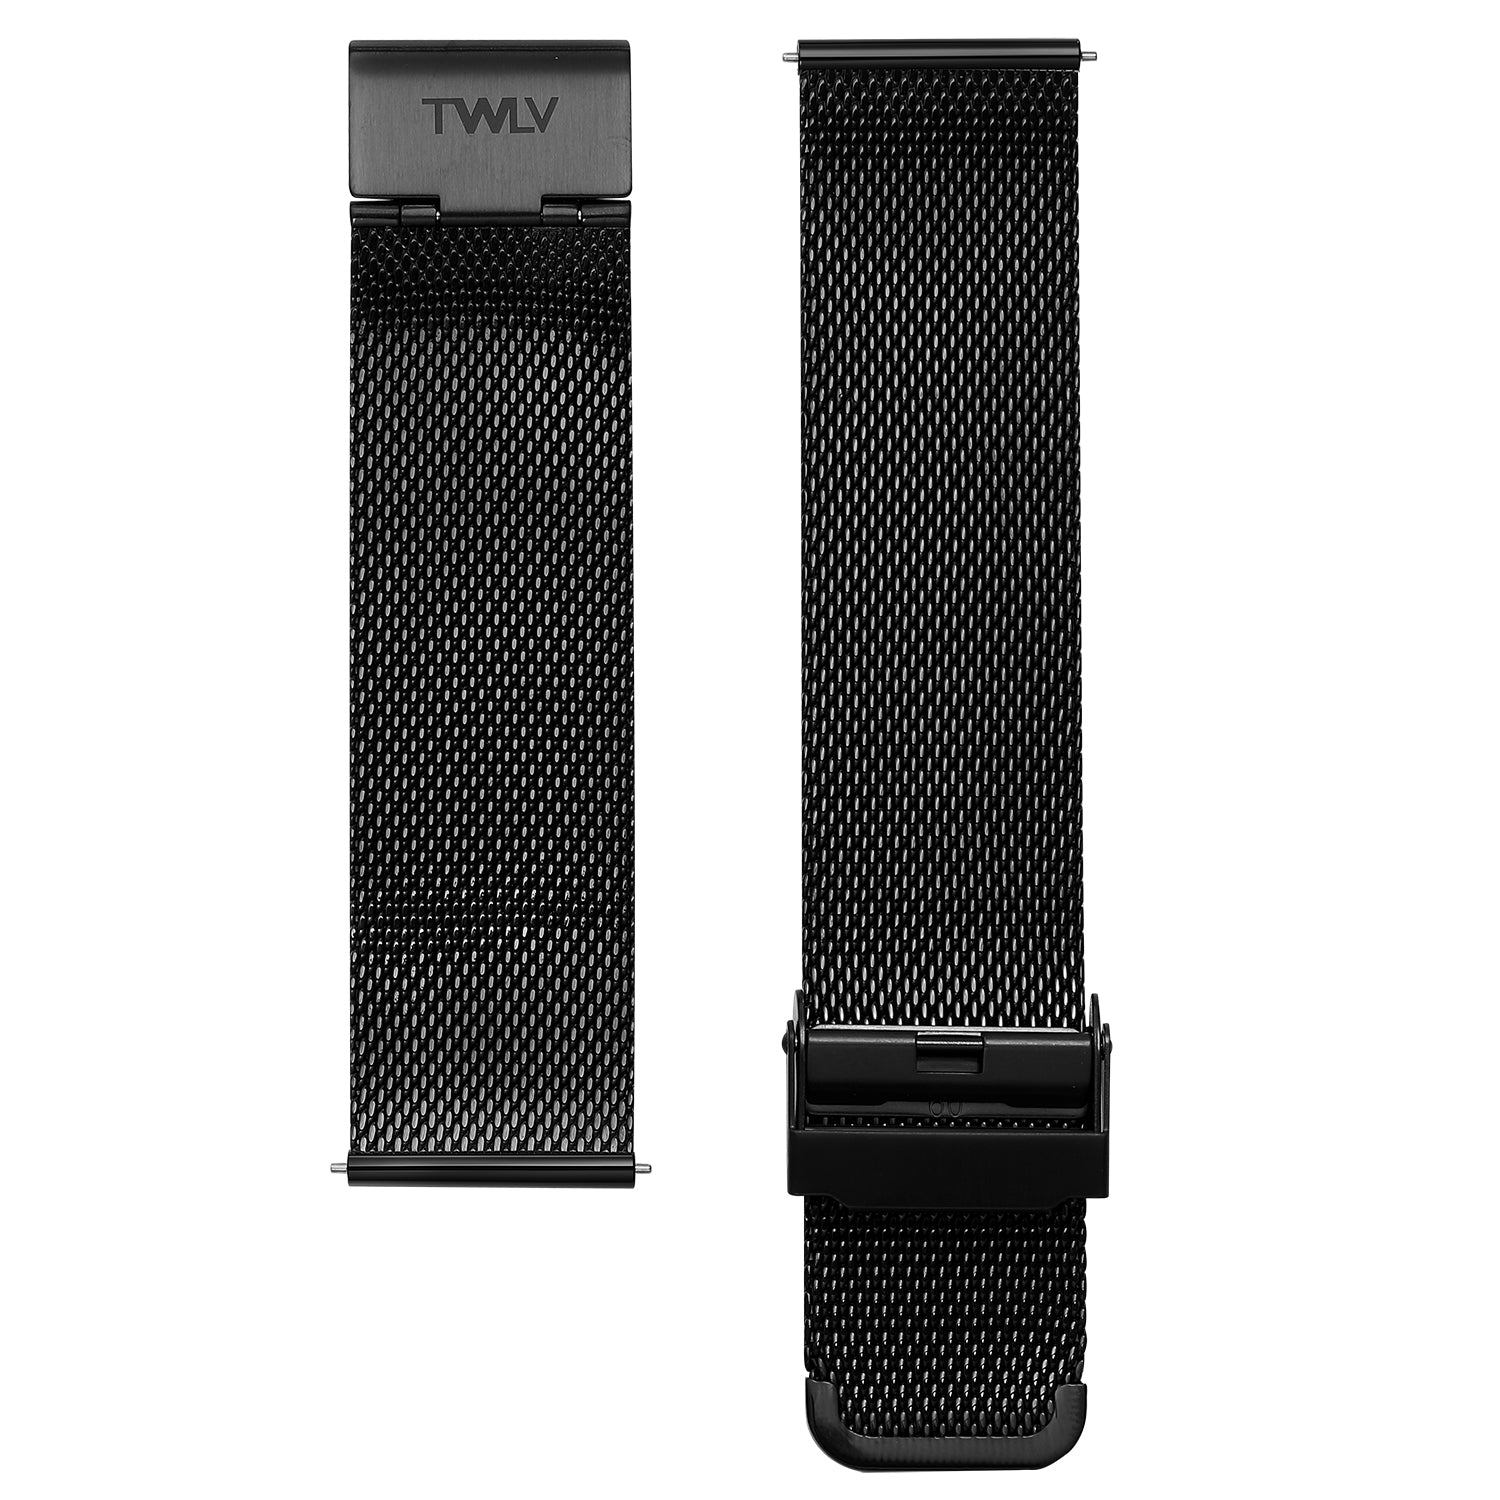 TWLV Gents Black Strap TWS229